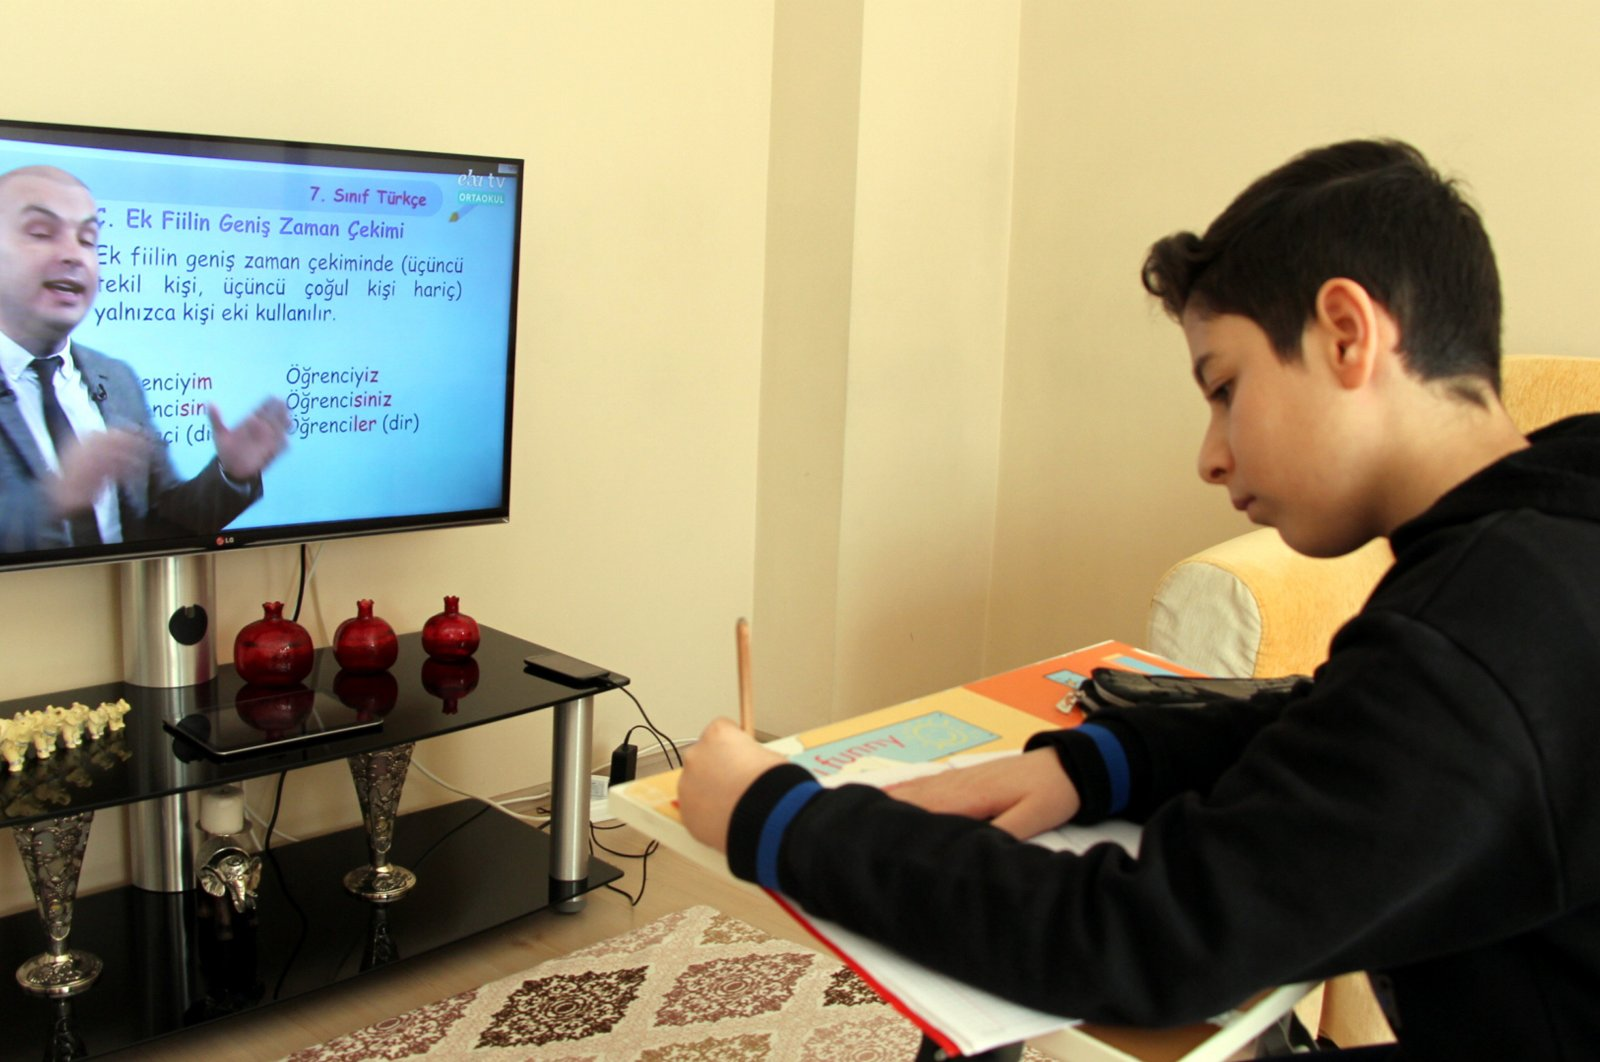 A student takes notes as he watches a remote education program, in Elazığ, Turkey, in this undated photo. (AA Photo)